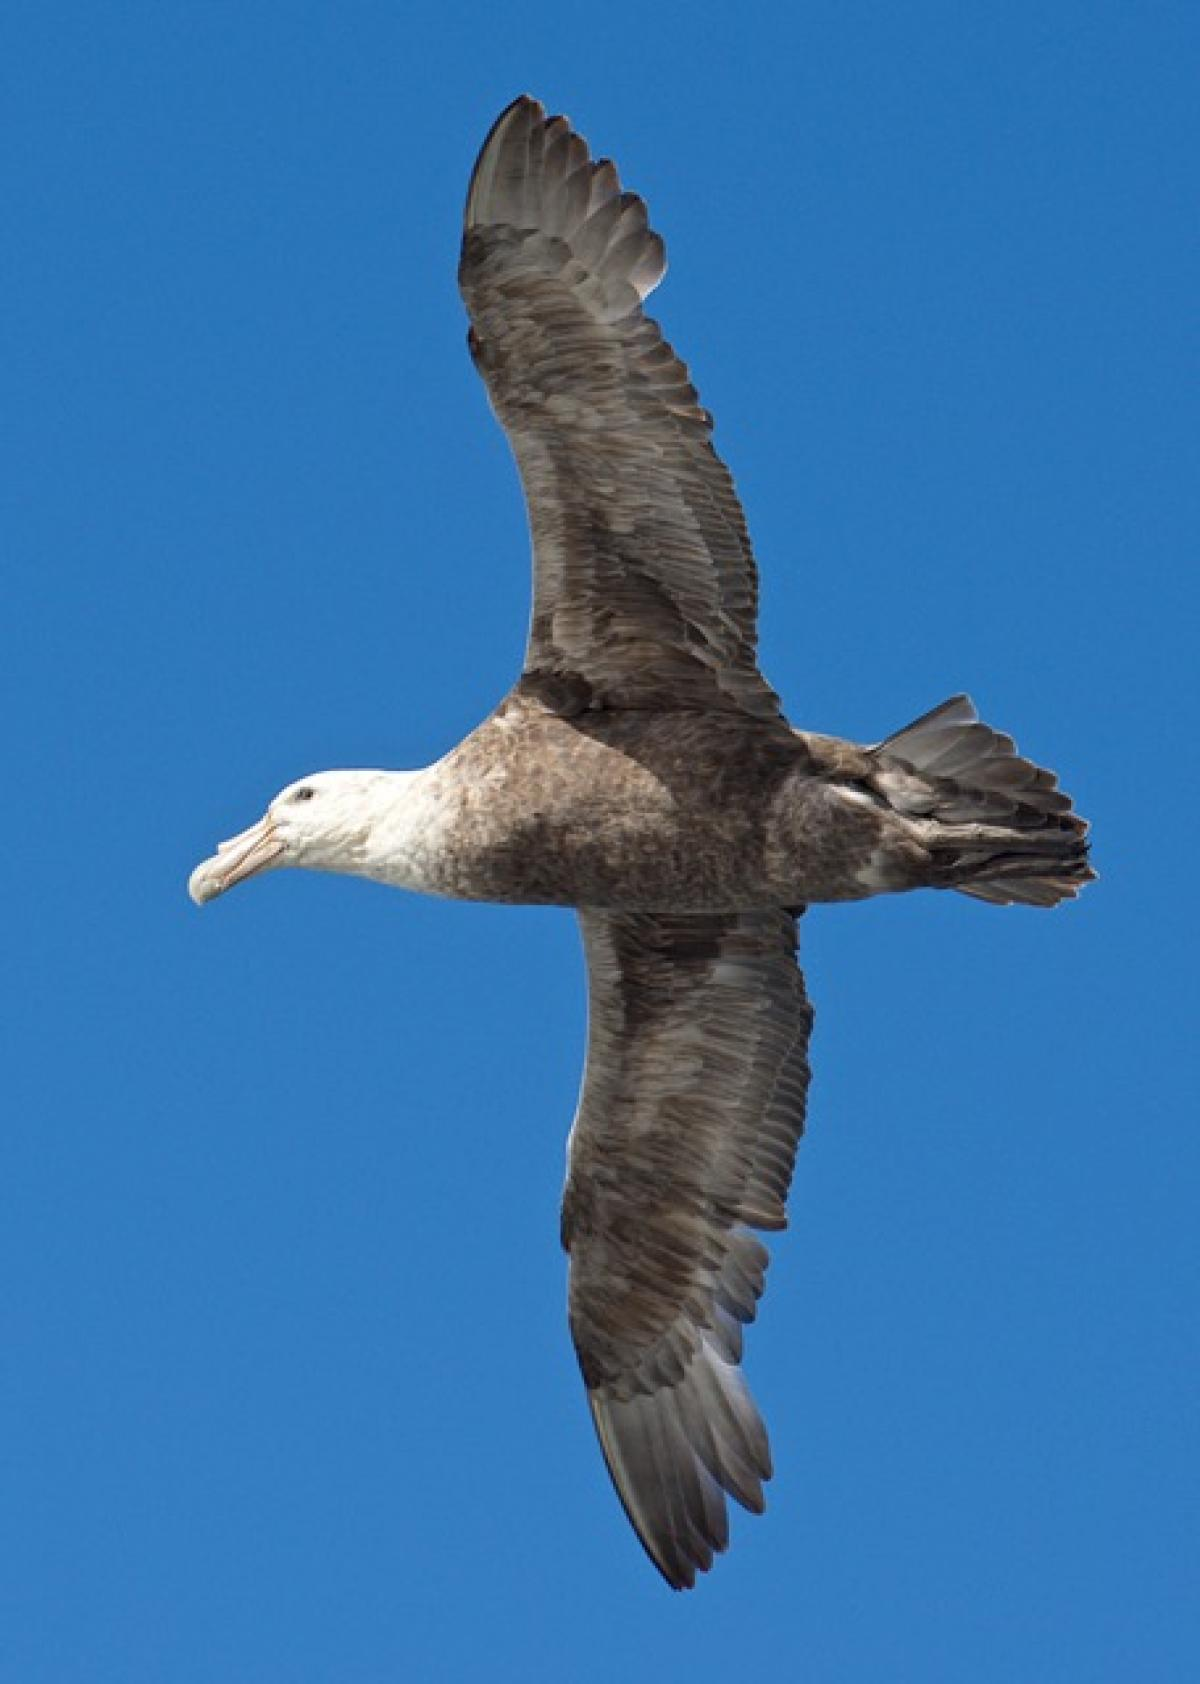 Southern Giant Petrel New Zealand Birds Online